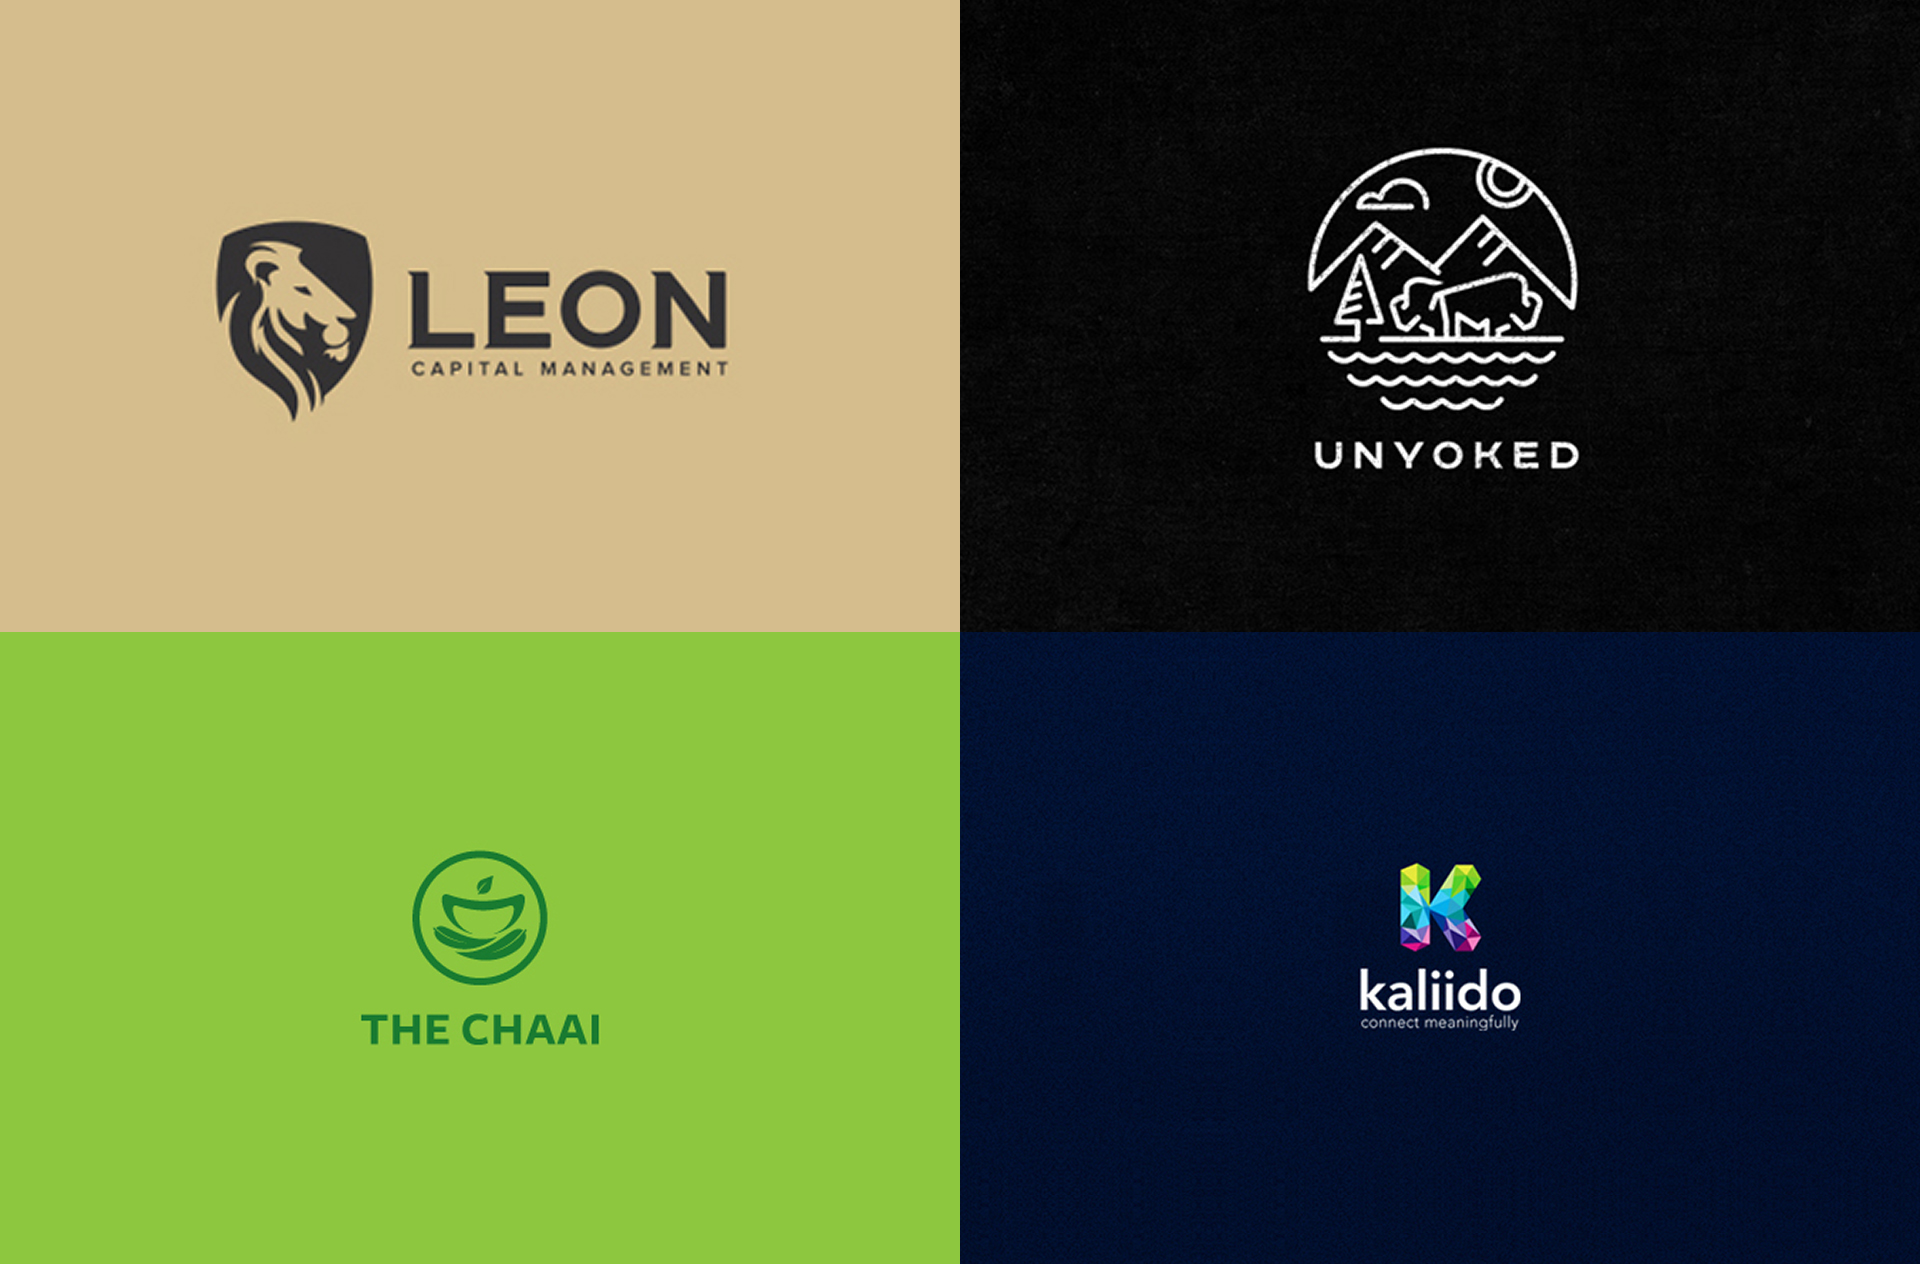 Featured Logo Designer: almosh82.